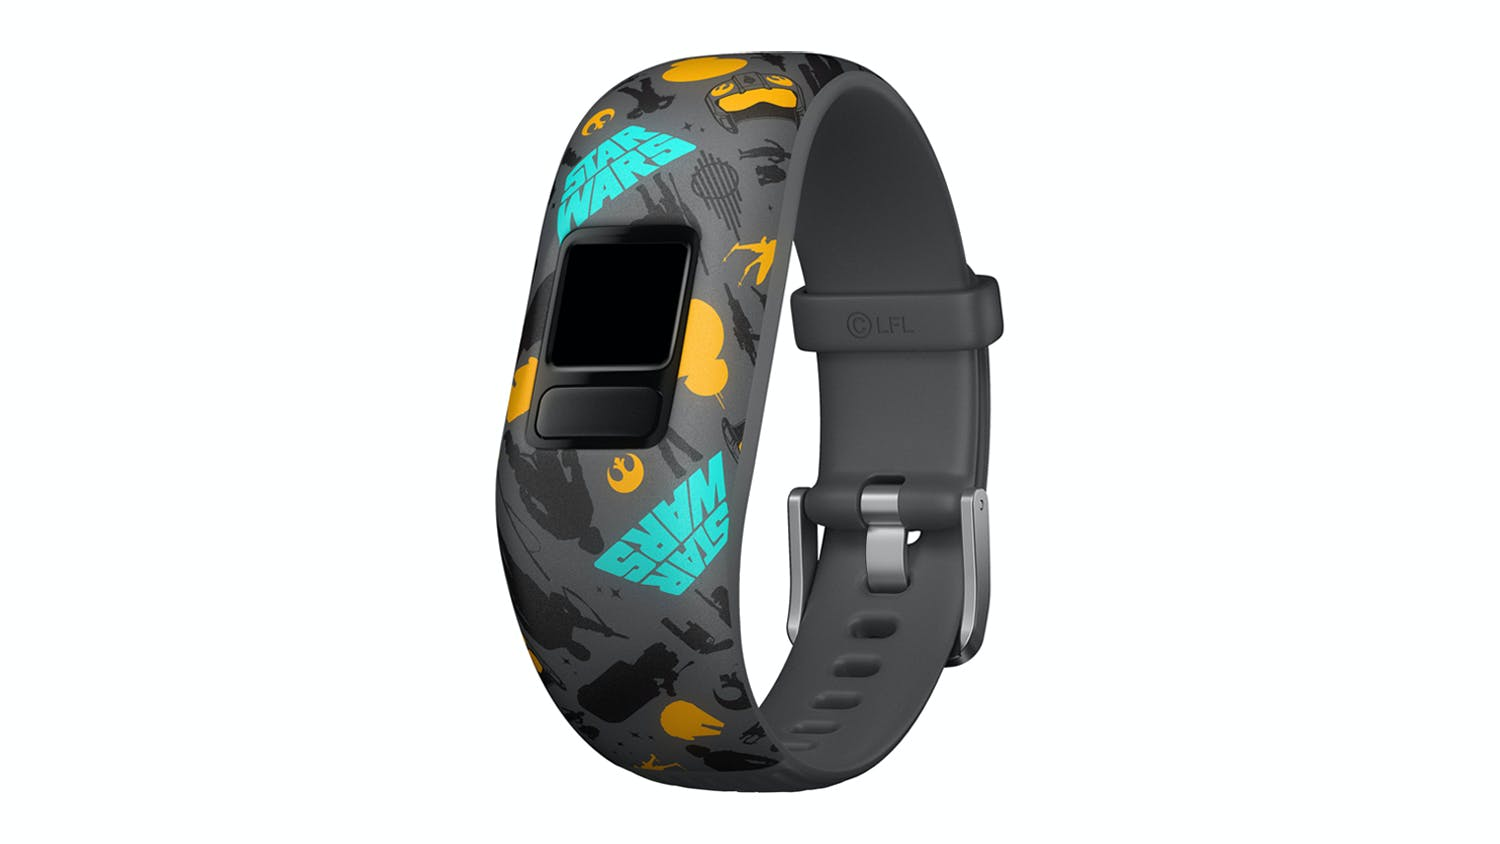 Garmin Adjustable Band for vivofit jr. 2 - Star Wars Resistance